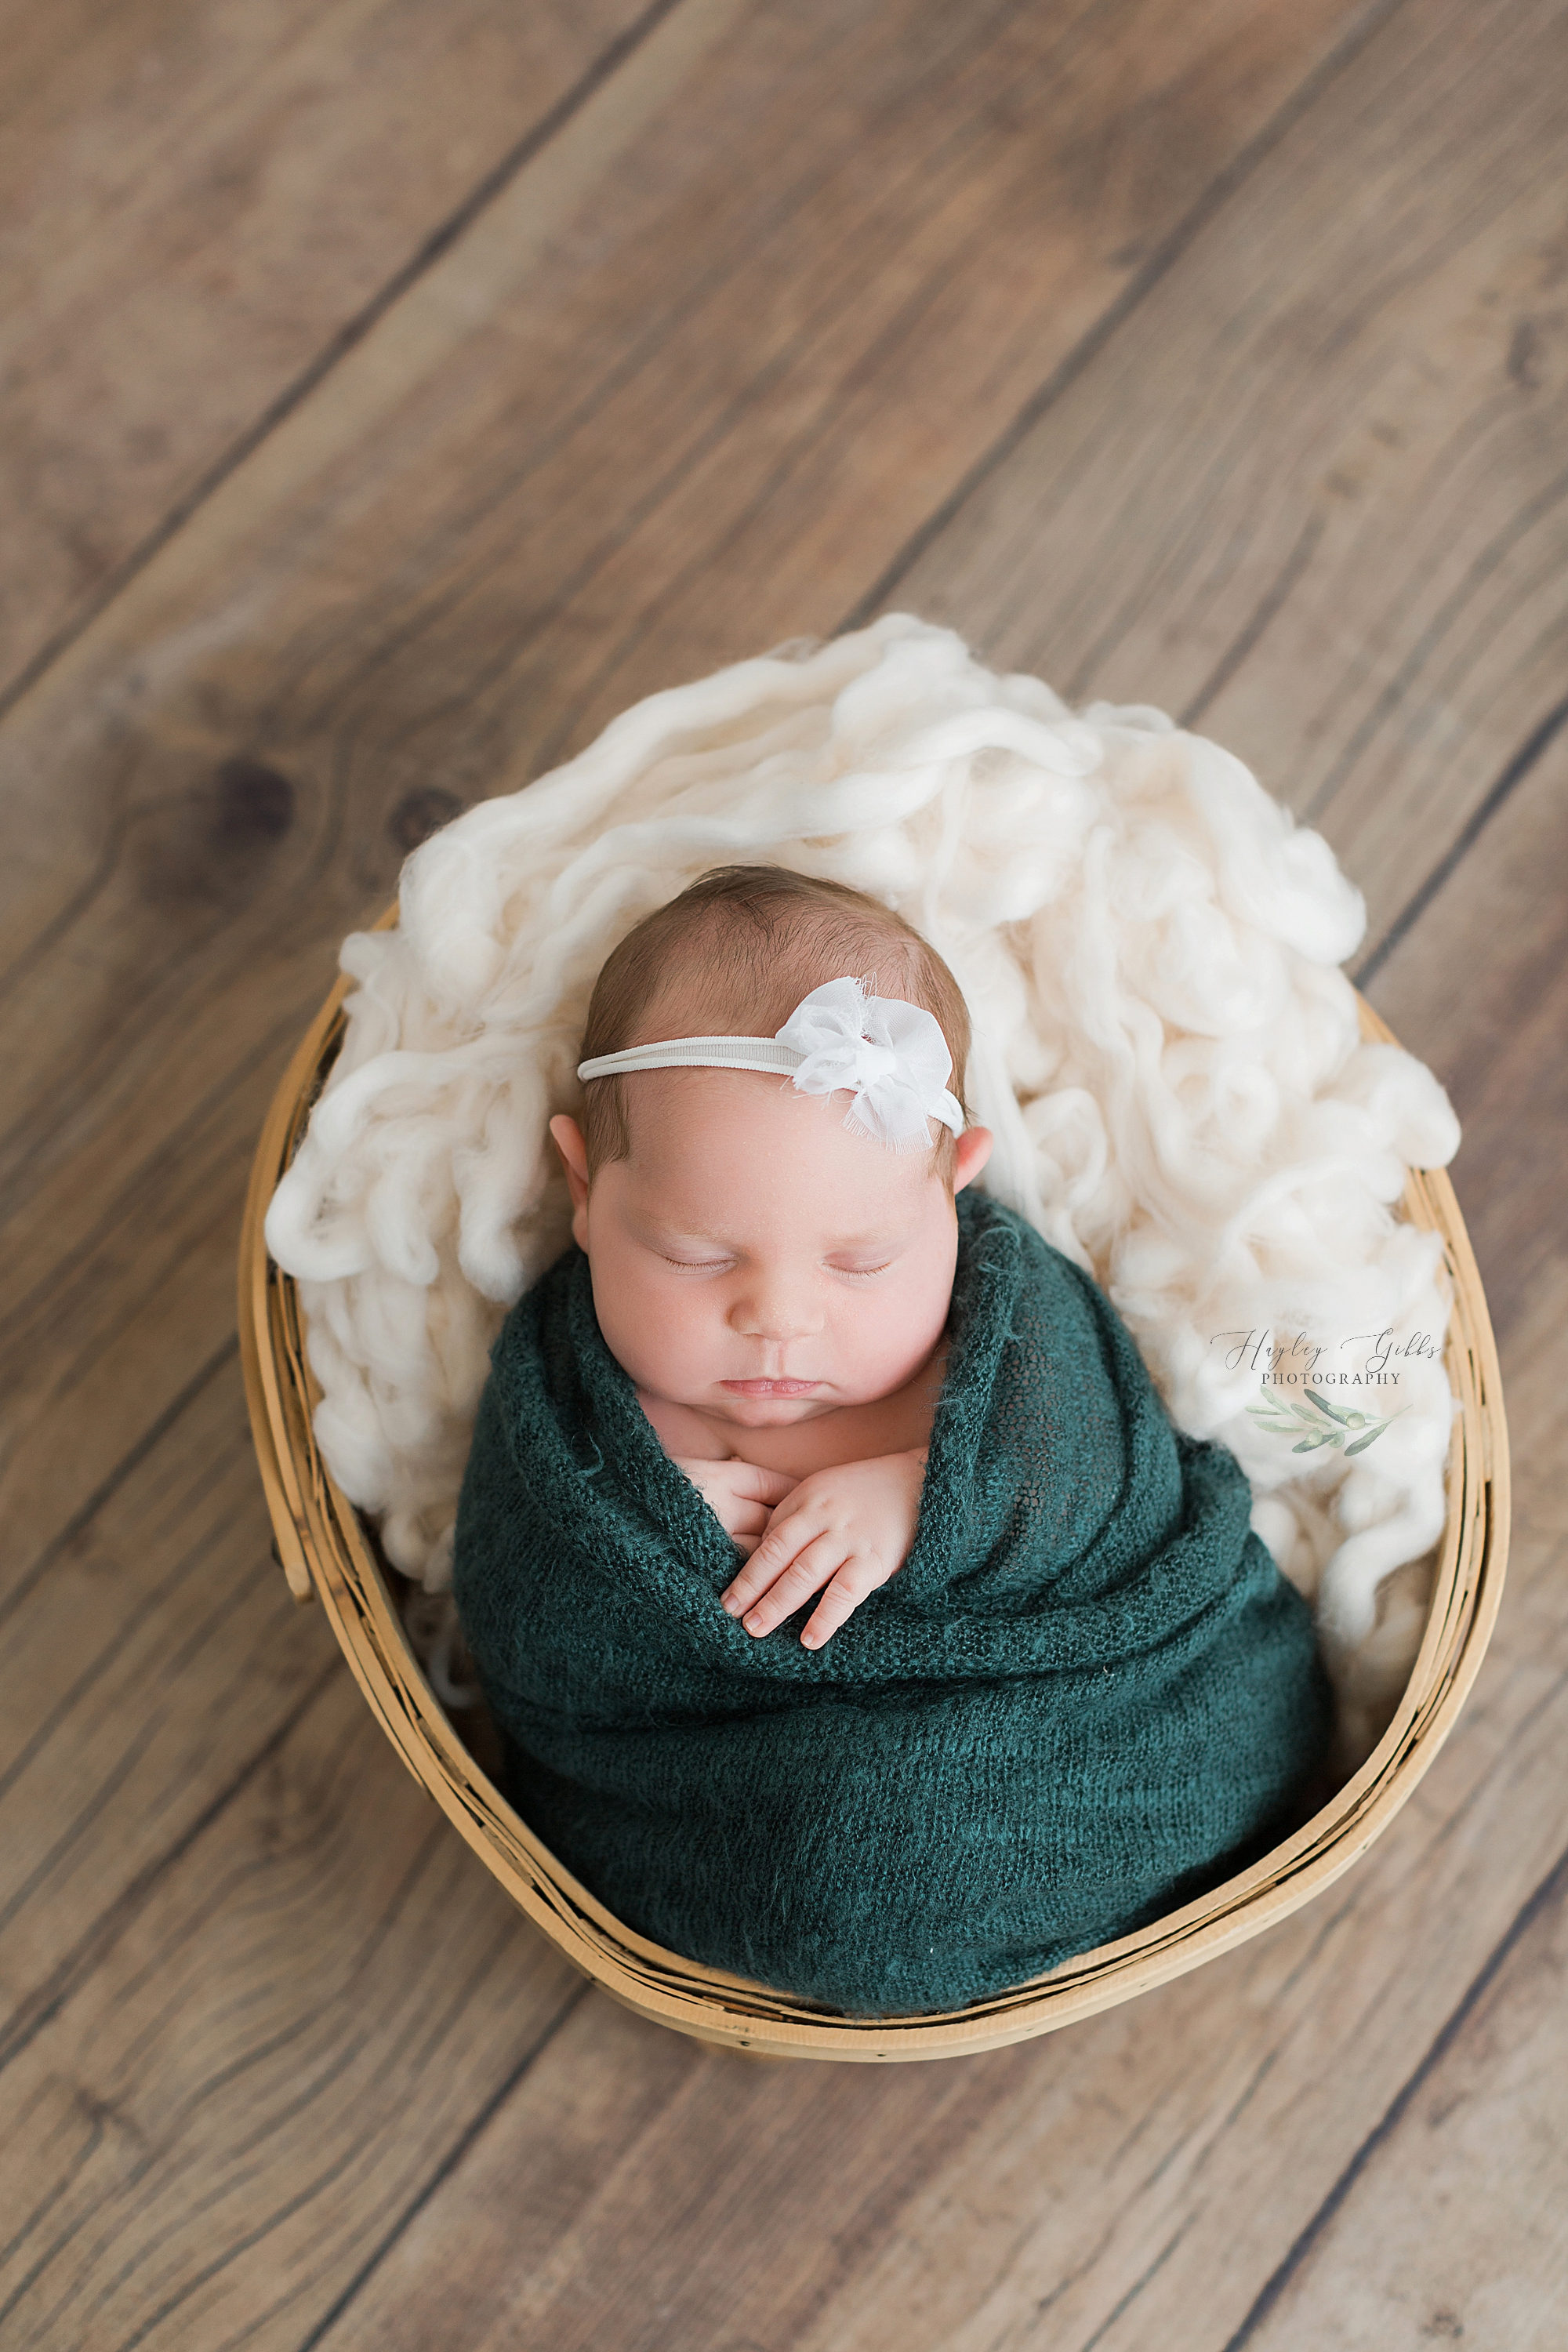 Hayley Gibbs Photography, Snead Alabama Photographer, Newborn Photographer, Oneonta Alabama Newborn Photographer, Oneonta Alabama Photographer, Newborn Photography, Snead Alabama, Professional Newborn Photography, Best Newborn Photographer